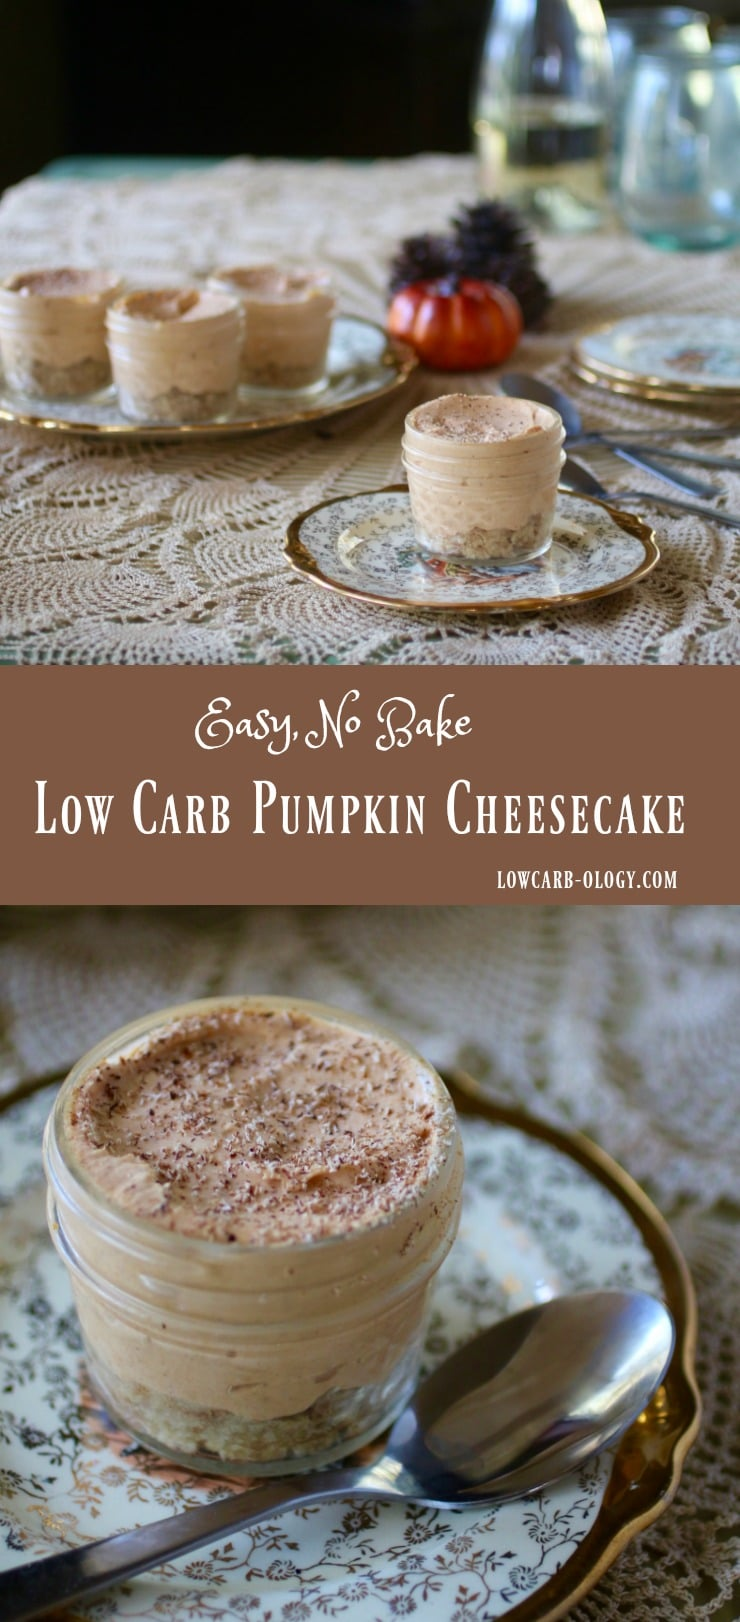 Easy, low carb, no bake pumpkin cheesecake goes together in minutes. Flavored with autumn spices like cloves, ginger, and cinnamon, pumpkin, and rum . From Lowcarb-ology.com